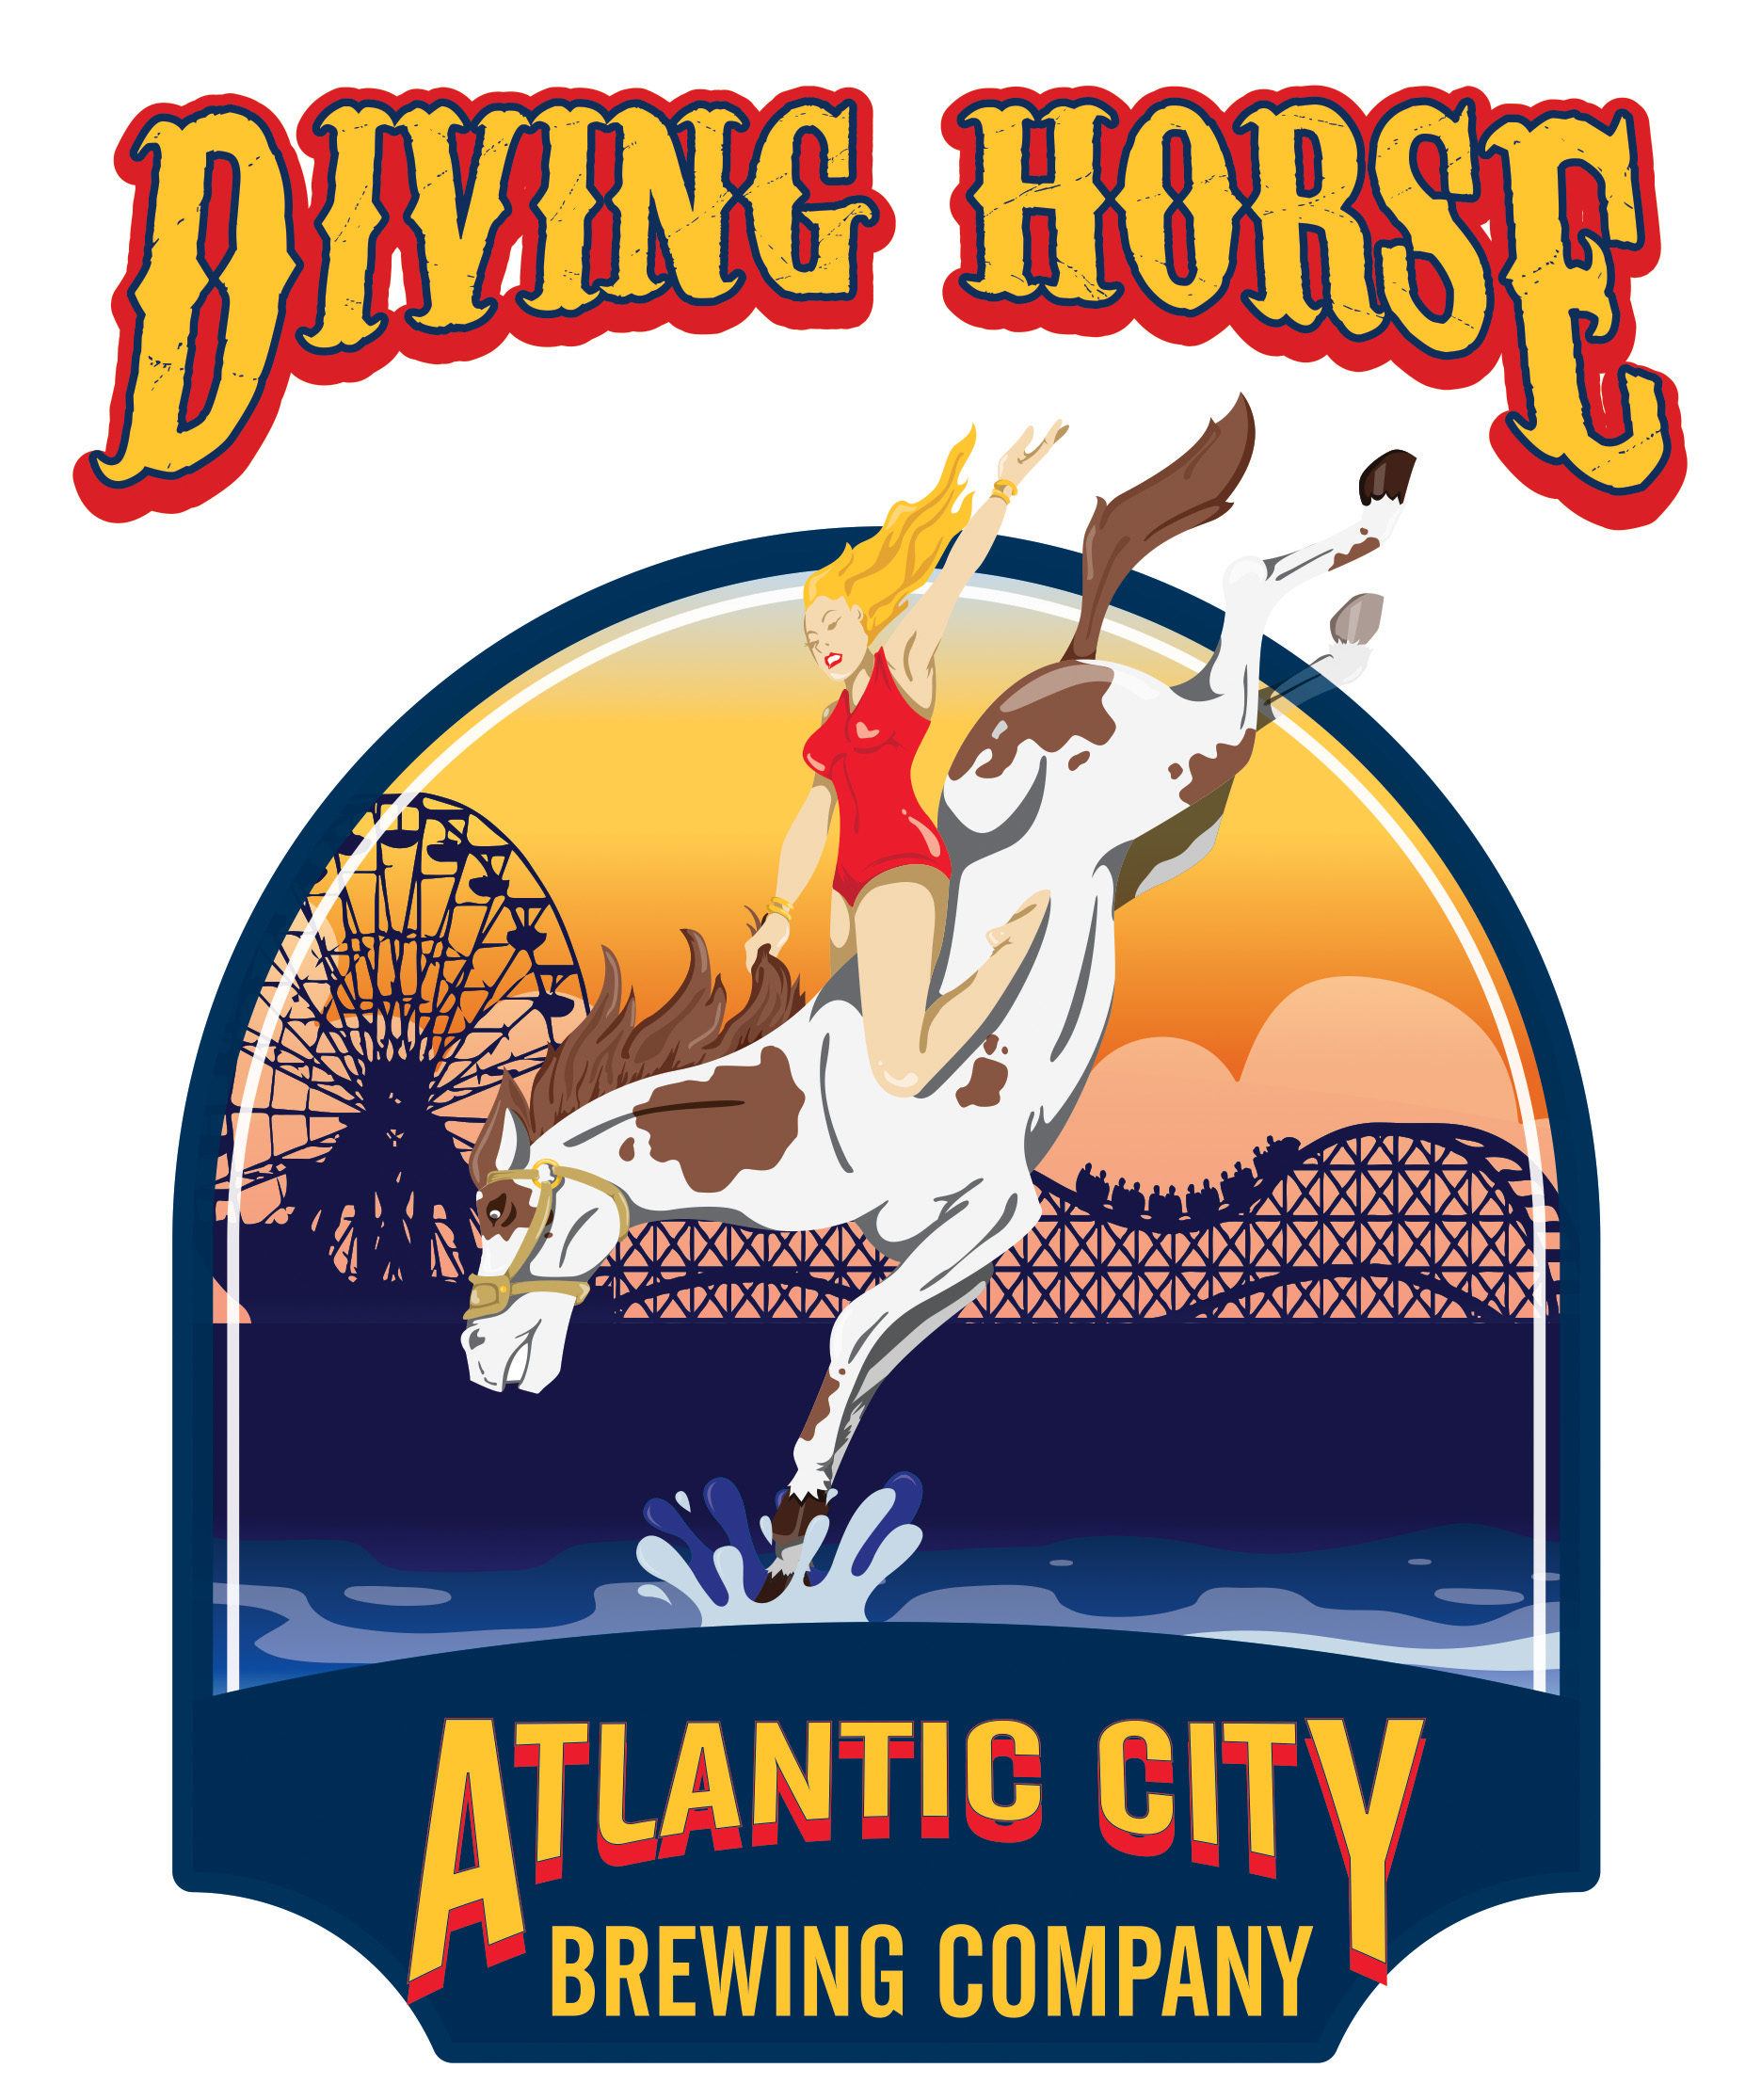 Atlantic City Brewing